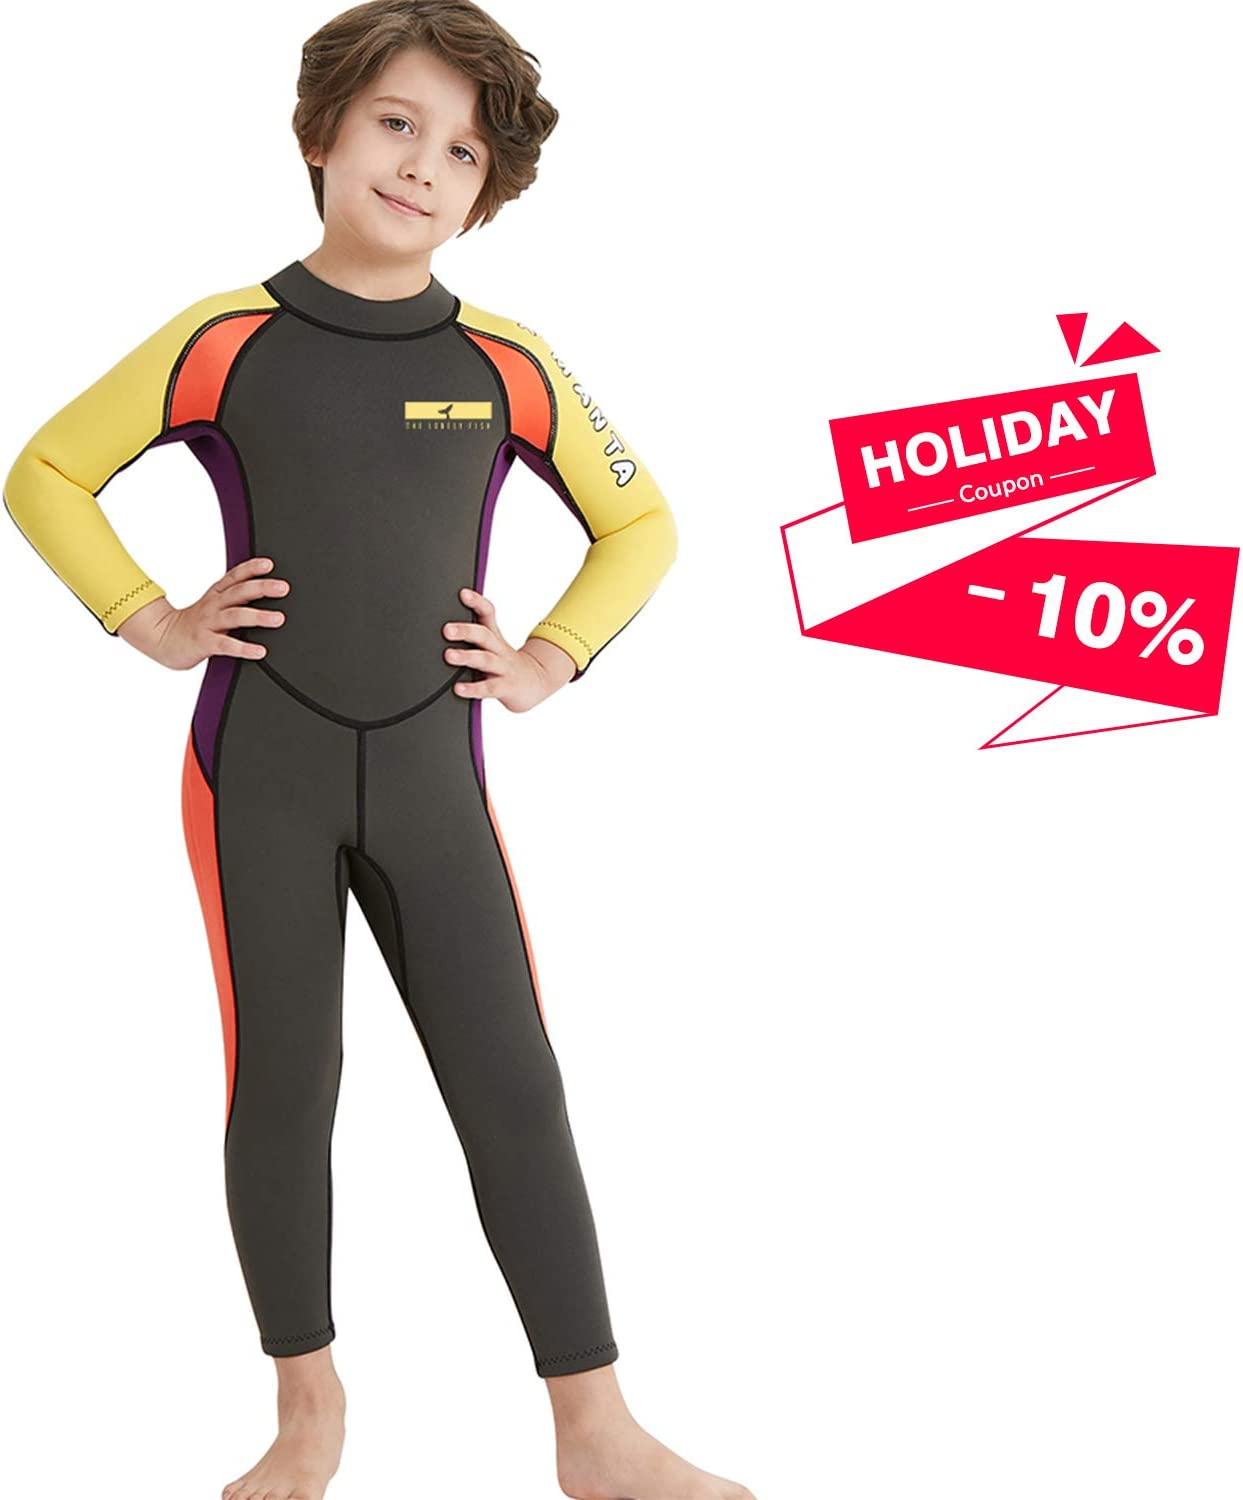 Dark Lightning Kids Wetsuit, 2mm Neoprene Thermal Swimsuit, Youth Boys and Girls One Piece Wet Suits for Scuba Diving, Full Suit and Shorty Swimsuit